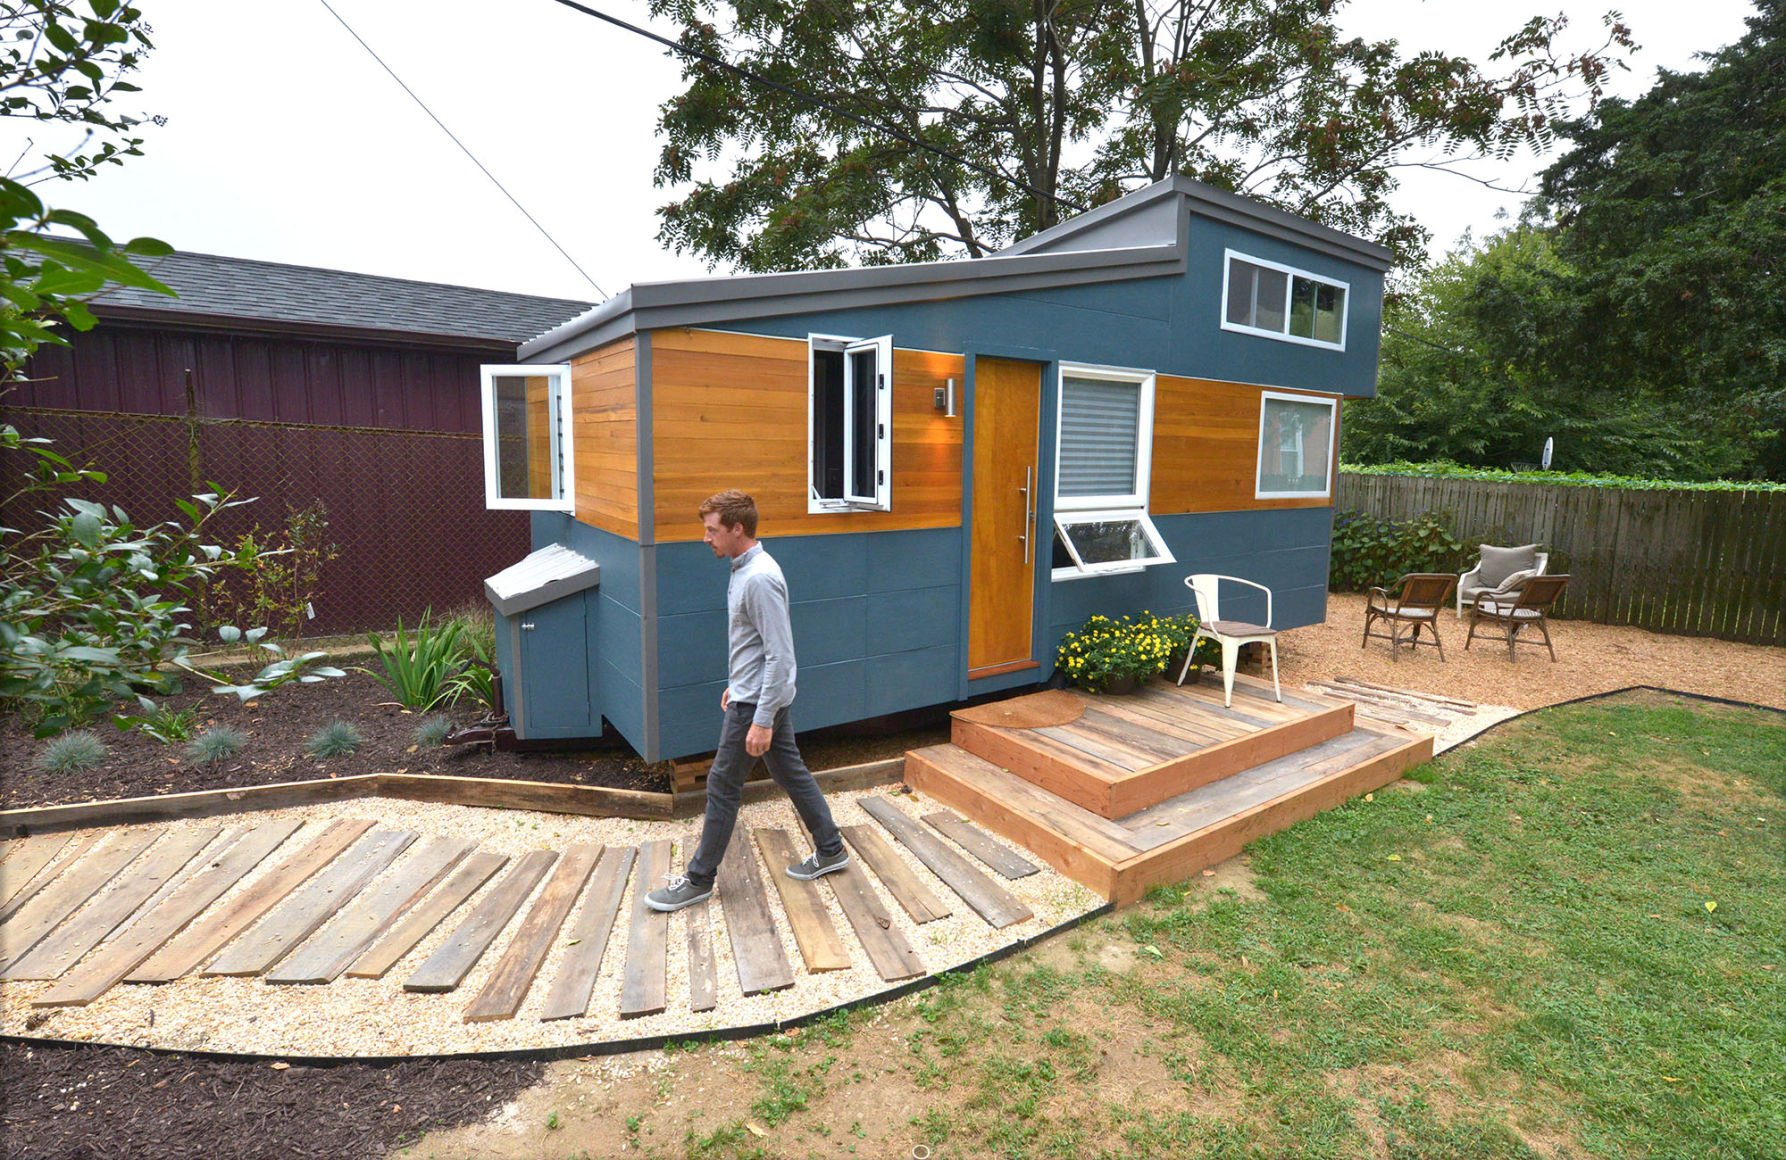 Fullsize Of Tiny Houses For Sale In Pa